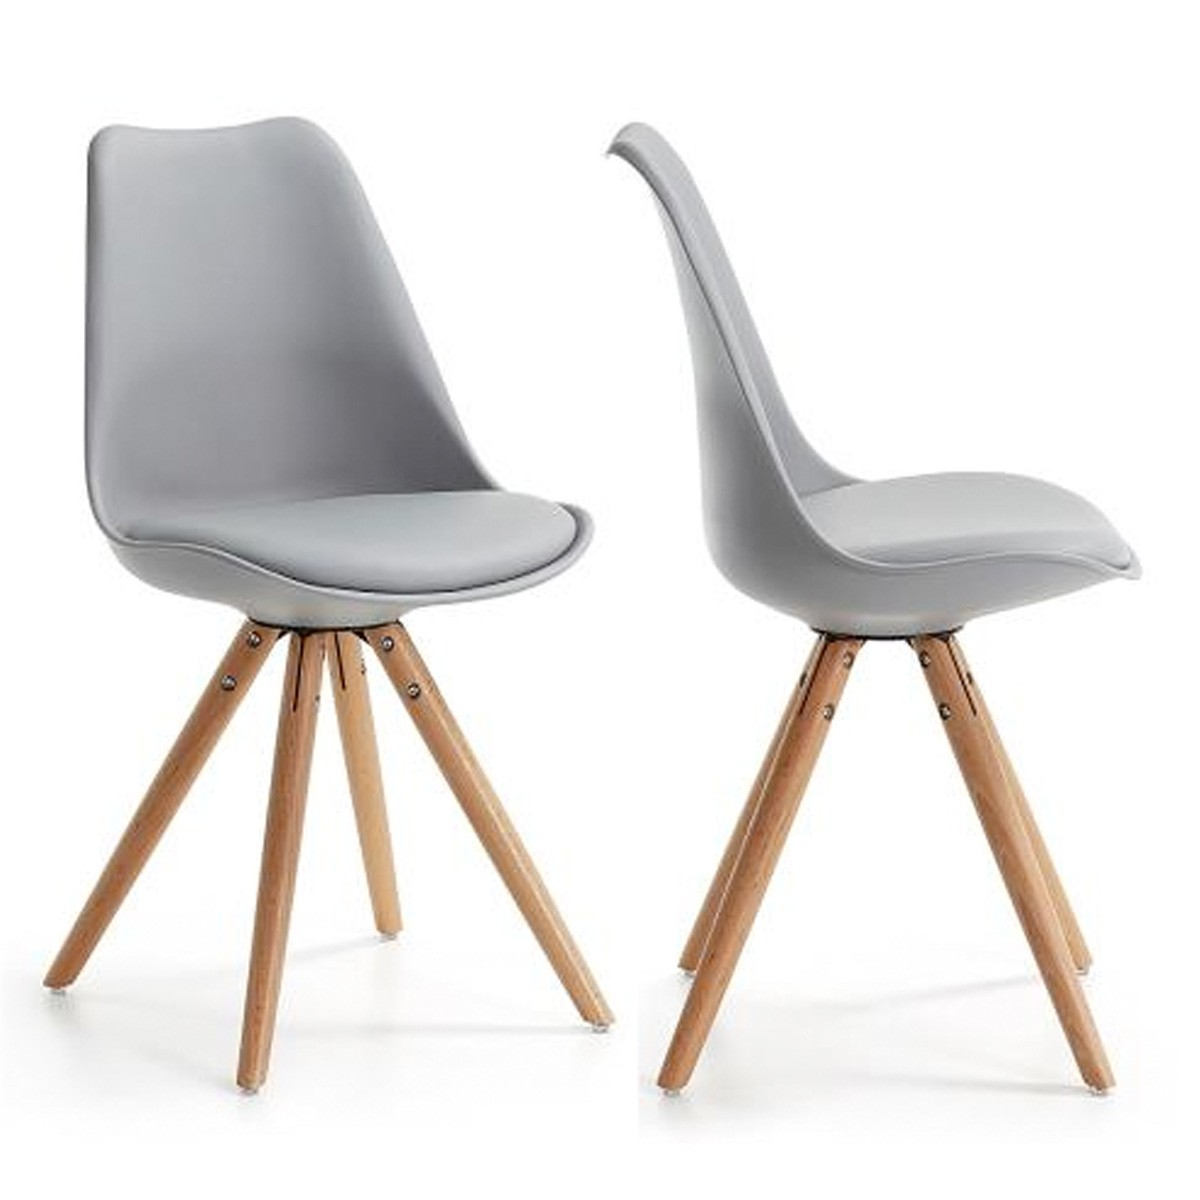 Chaises design une belle s lection d co tendance for Chaise de designer